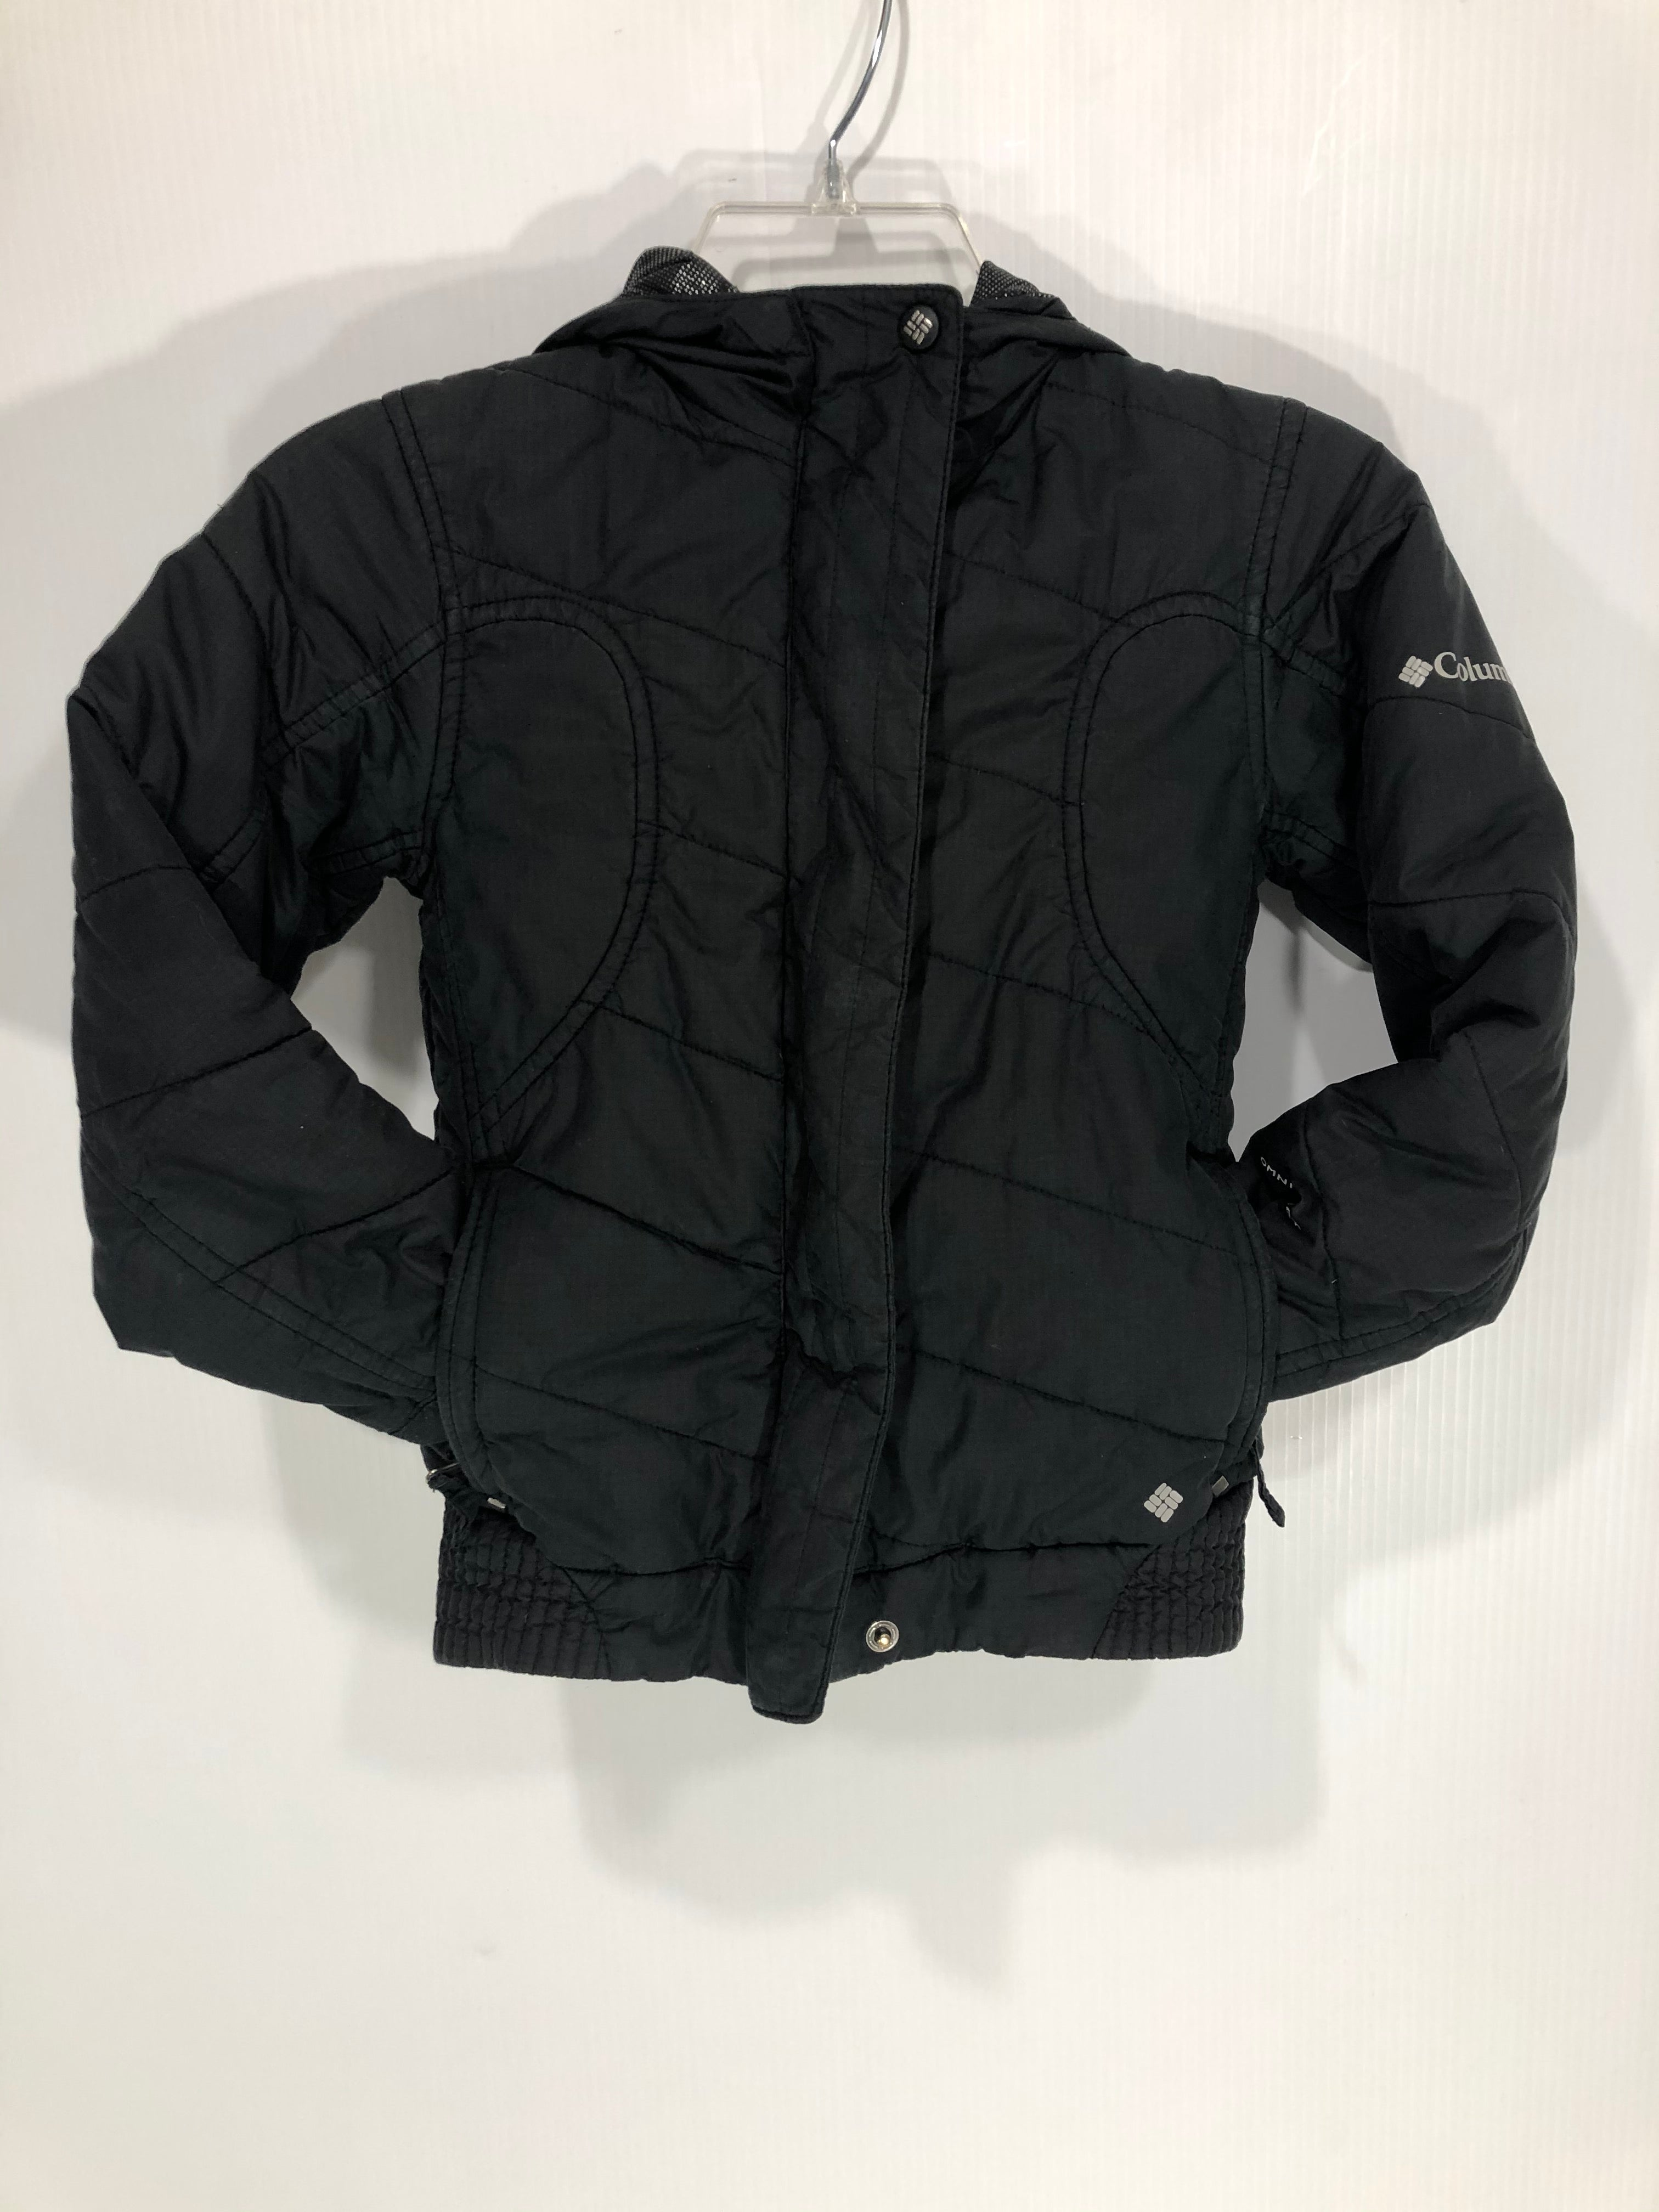 Columbia Titanium Youth Winter Jacket - Size 7/8 - Pre-owned (RLBXCD)